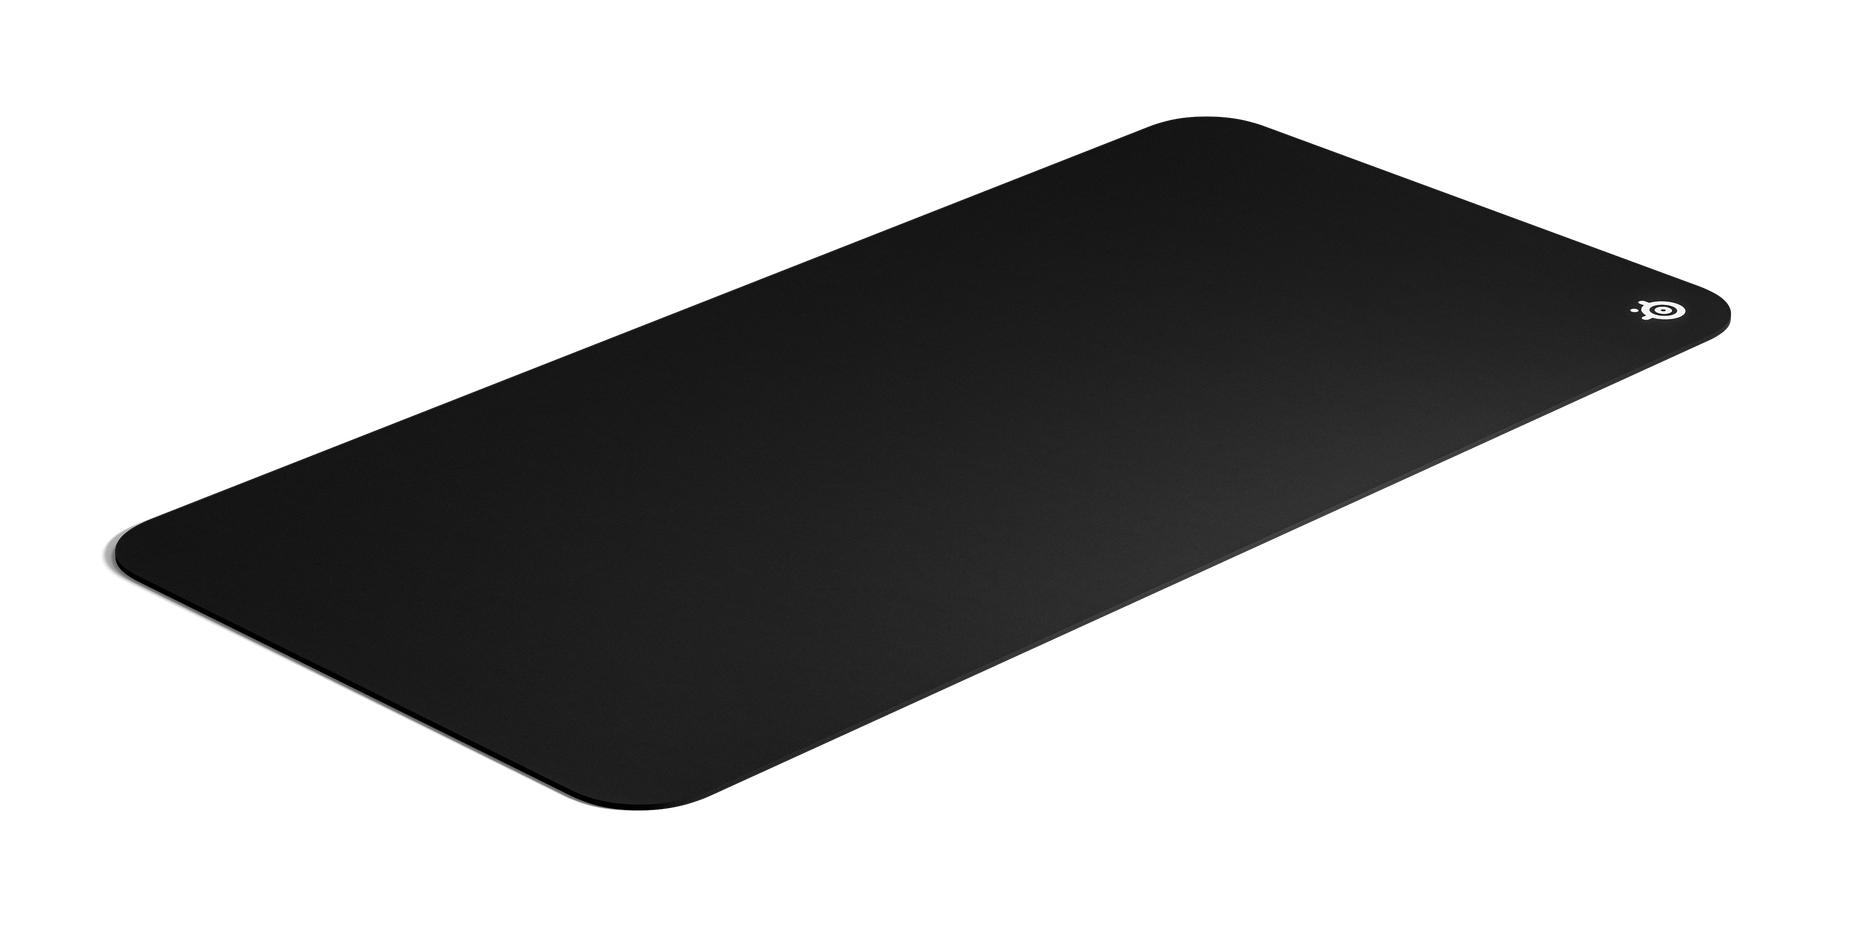 Mousepad at an angle to show the scale